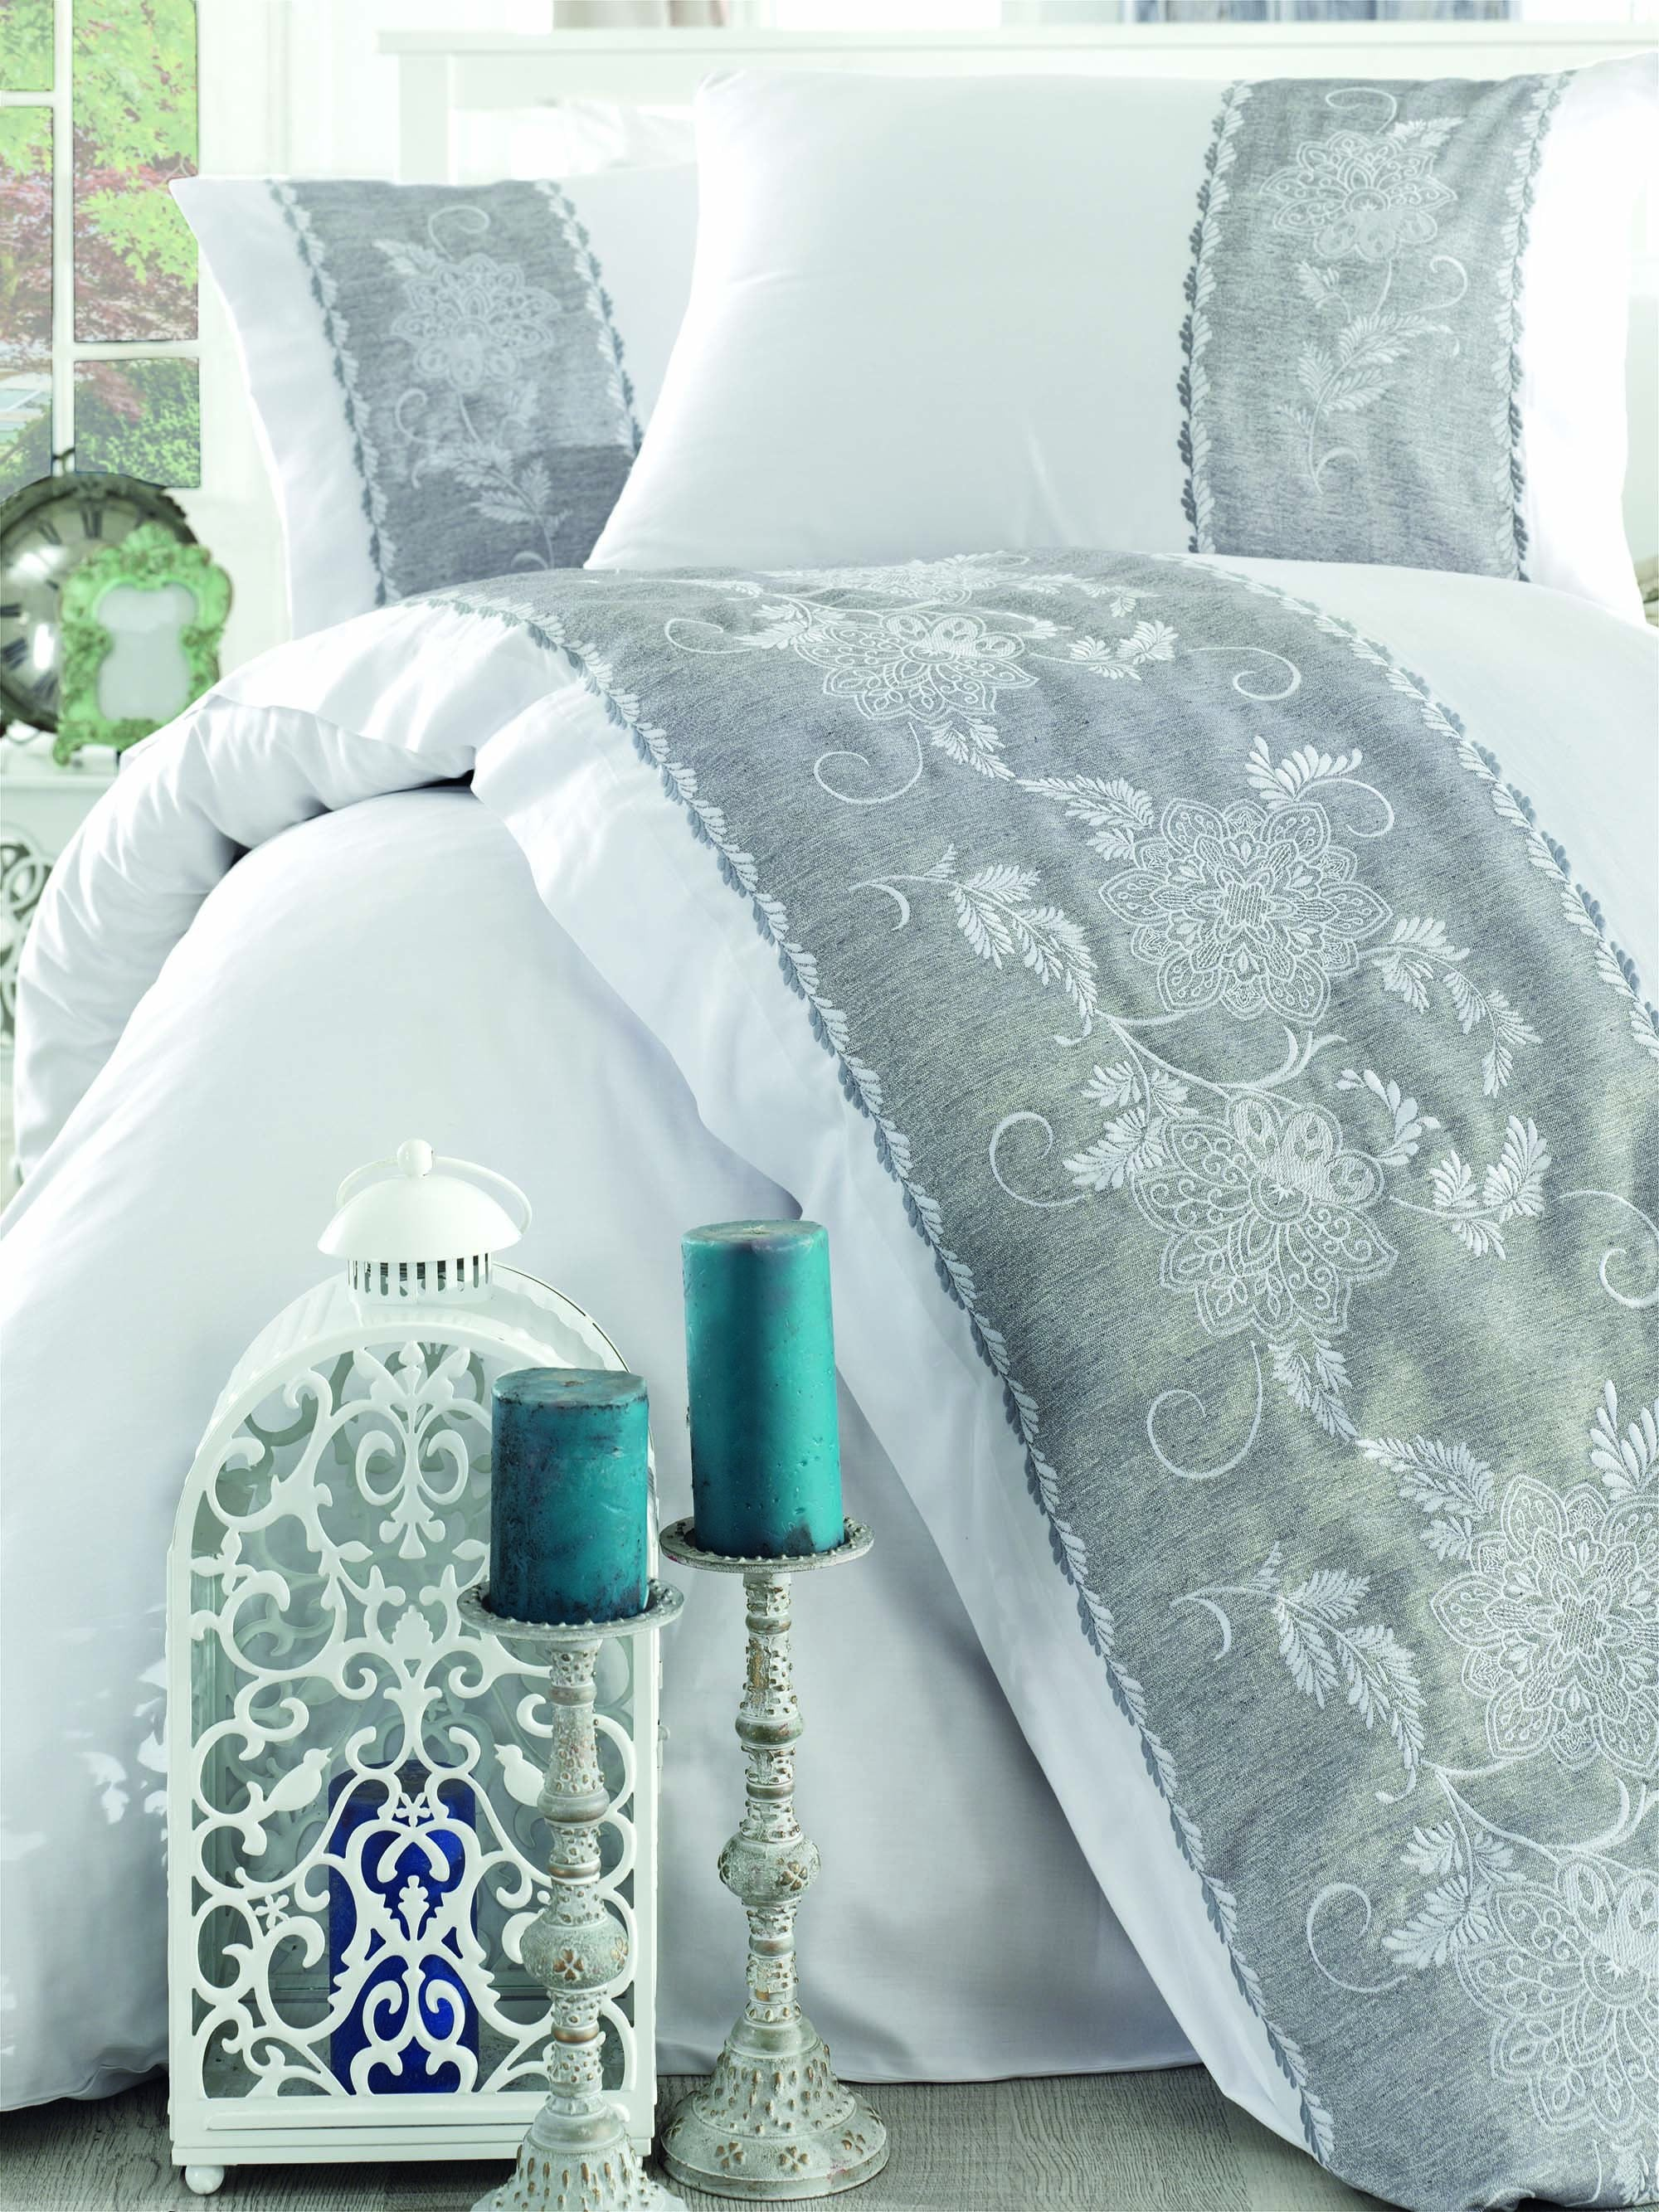 ELEGANT EMBROIDERY DECORATED COTTON SATIN DUVET COVER SET - COTTONISH